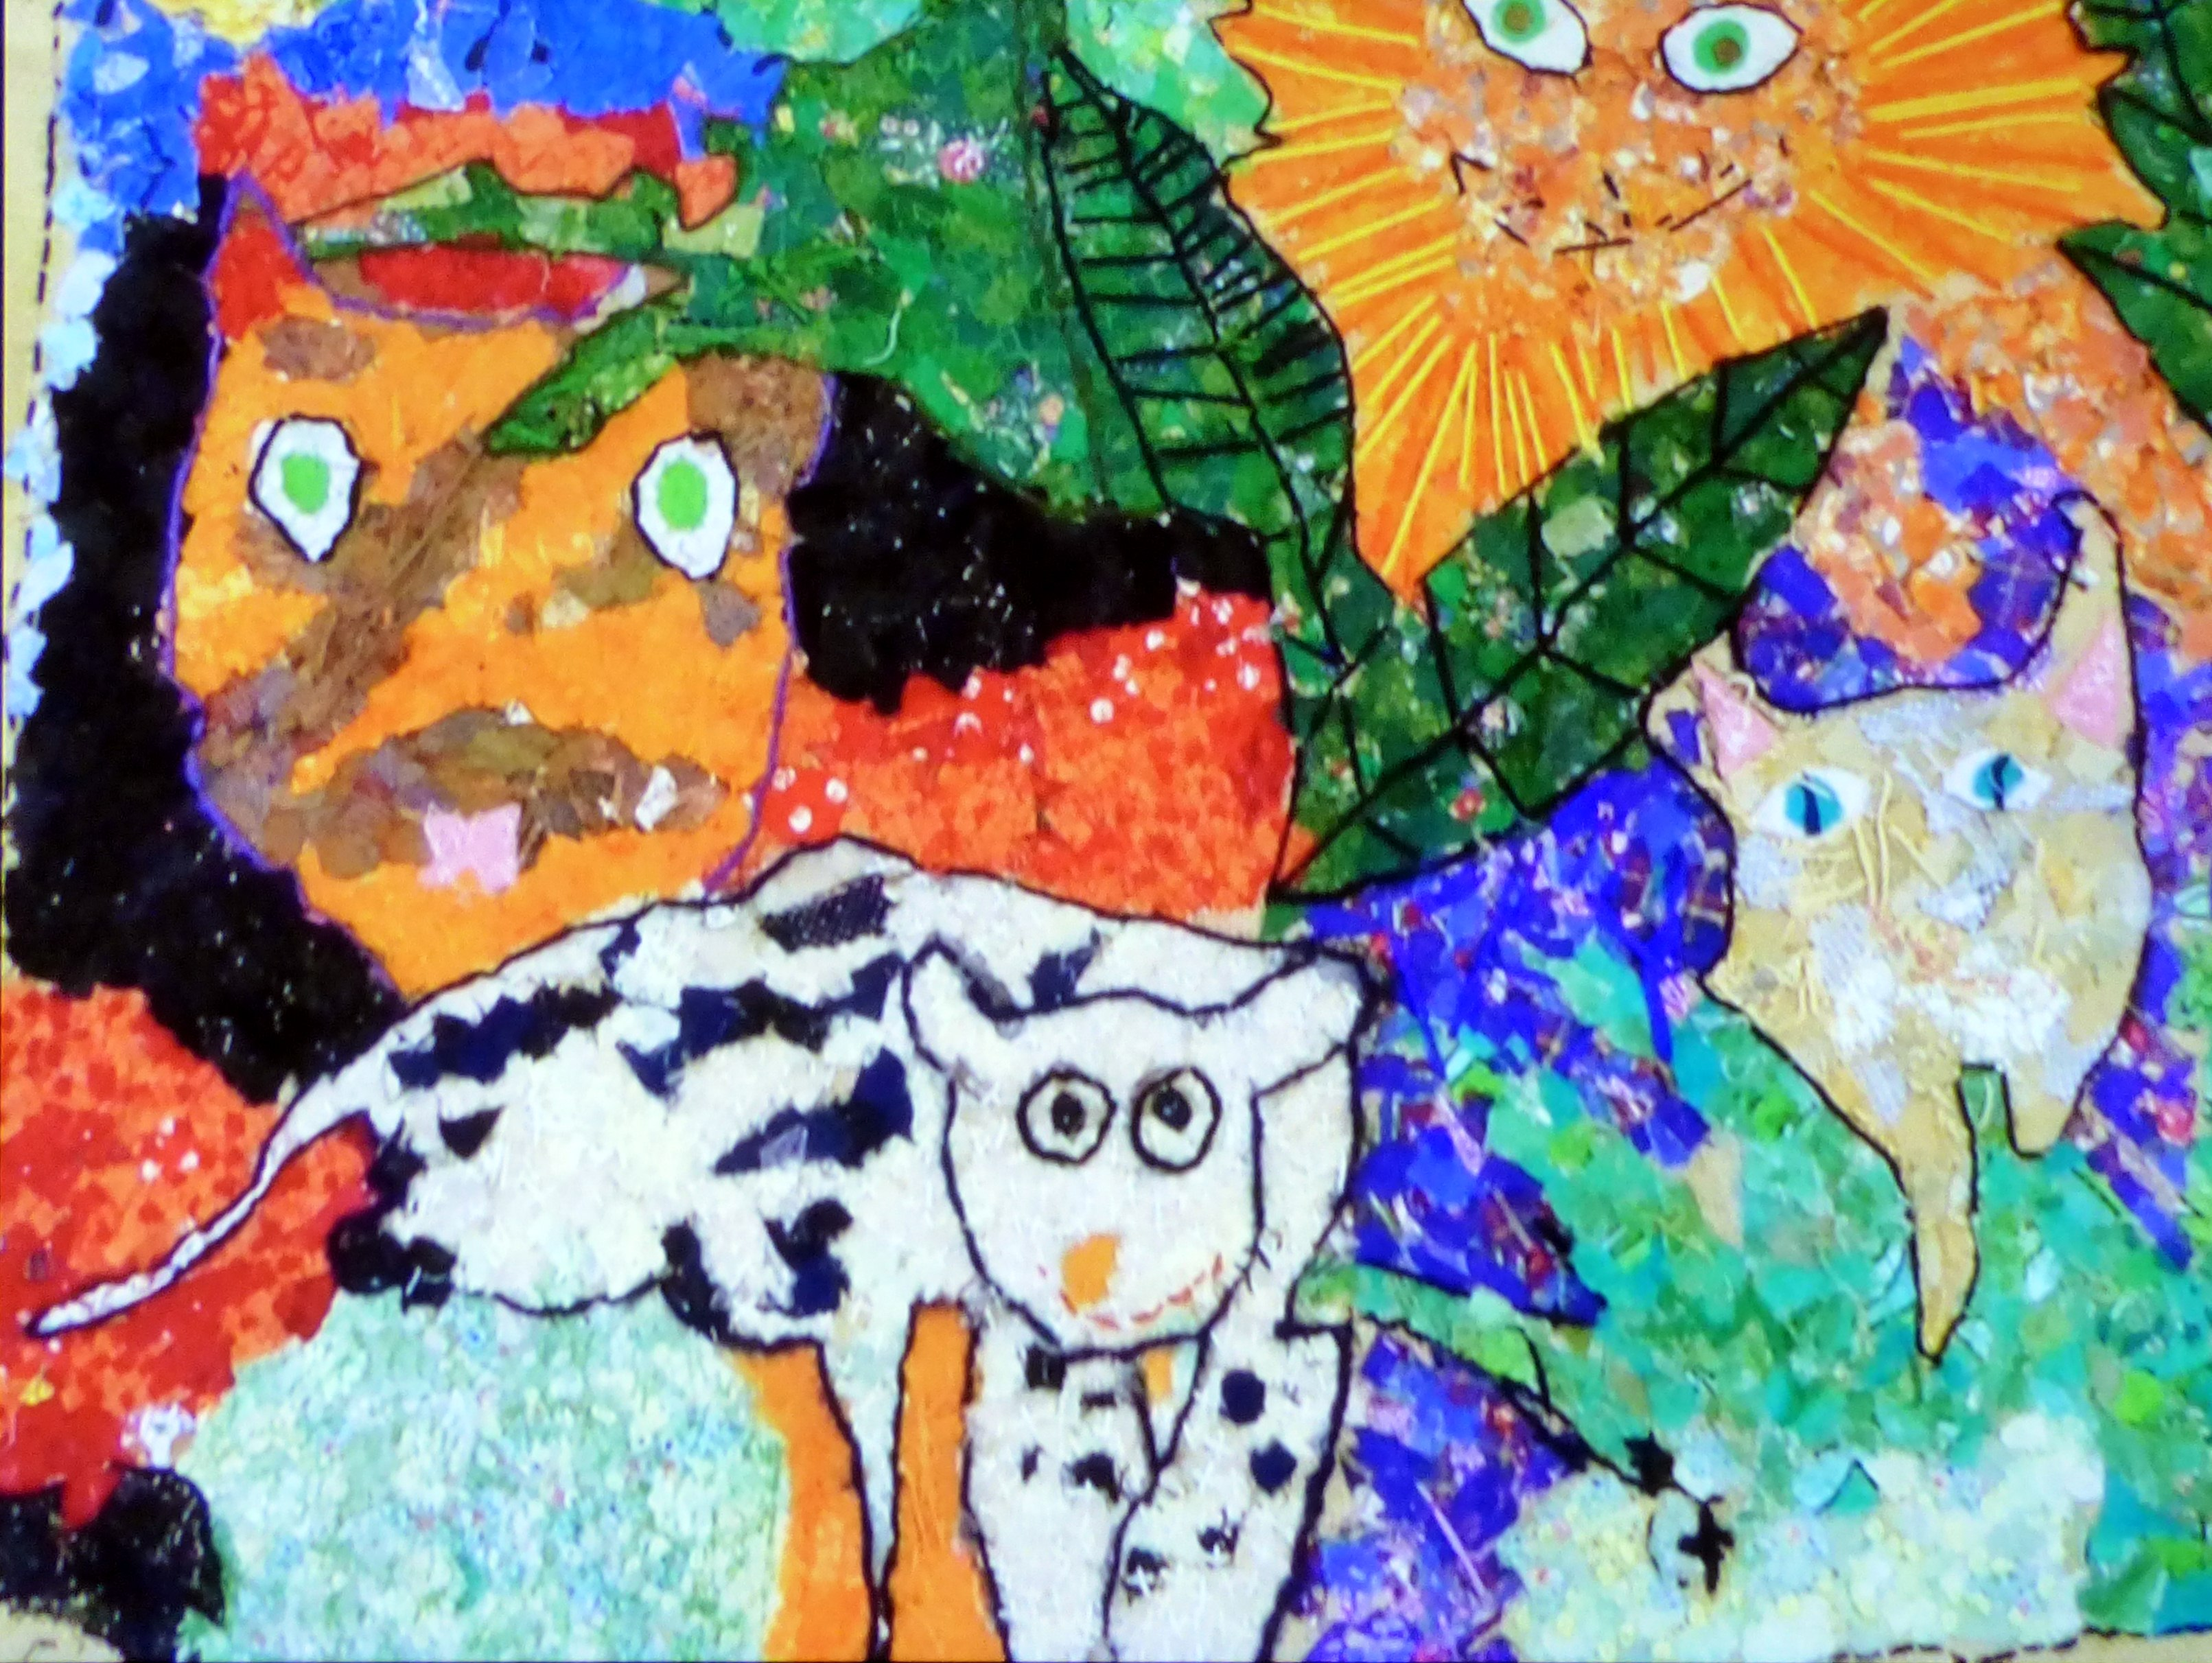 panel created by pupils of The Meadows special Needs School under the guidance of Richard Box